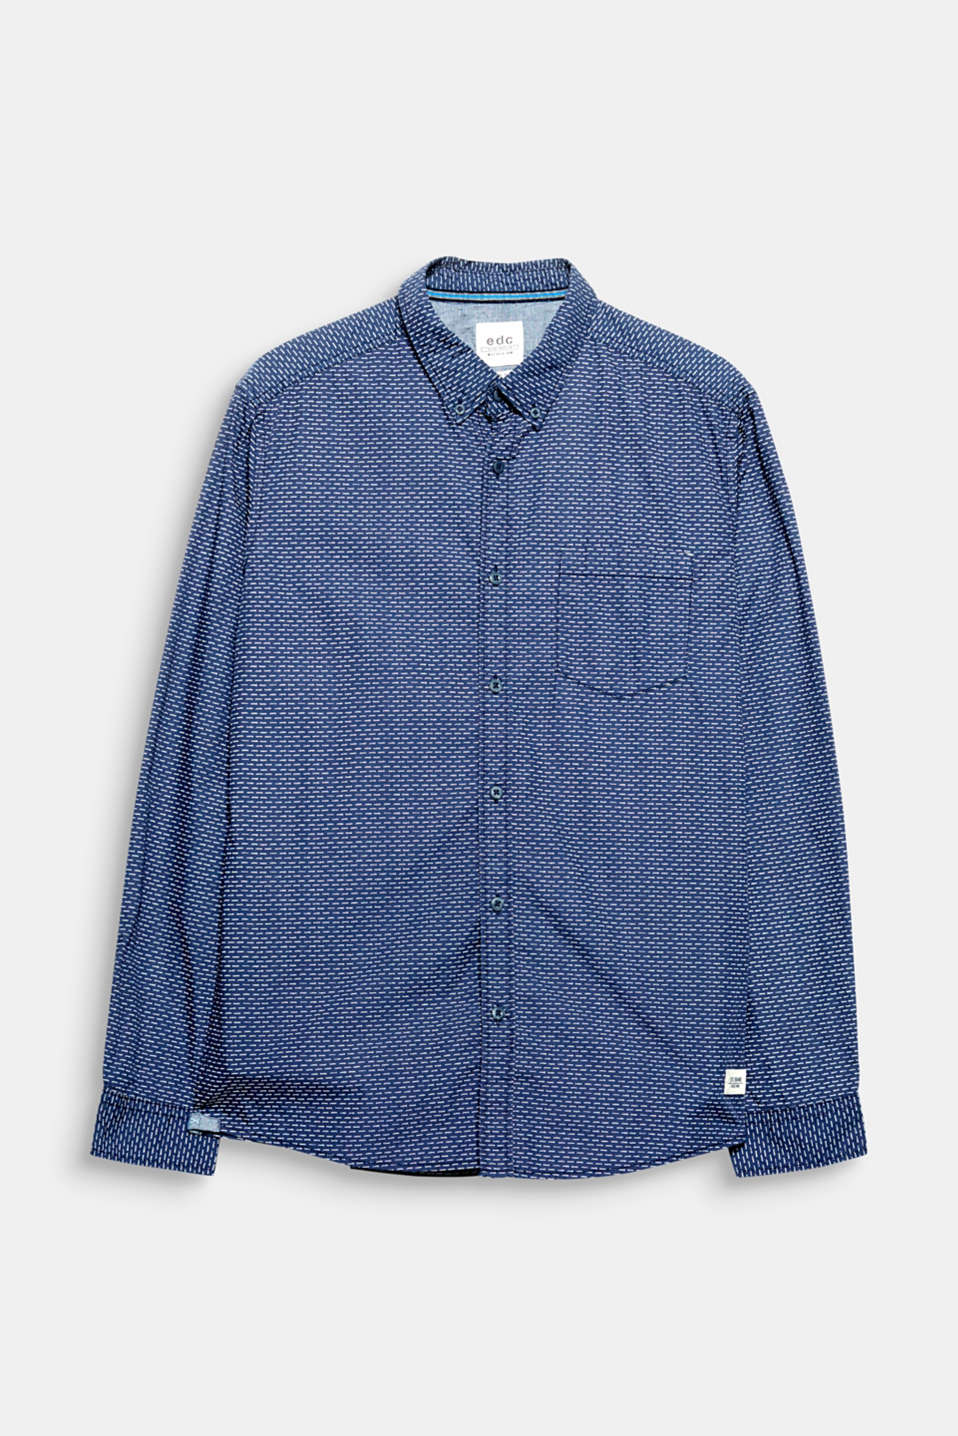 The minimal print and cool design give this shirt an urban look.